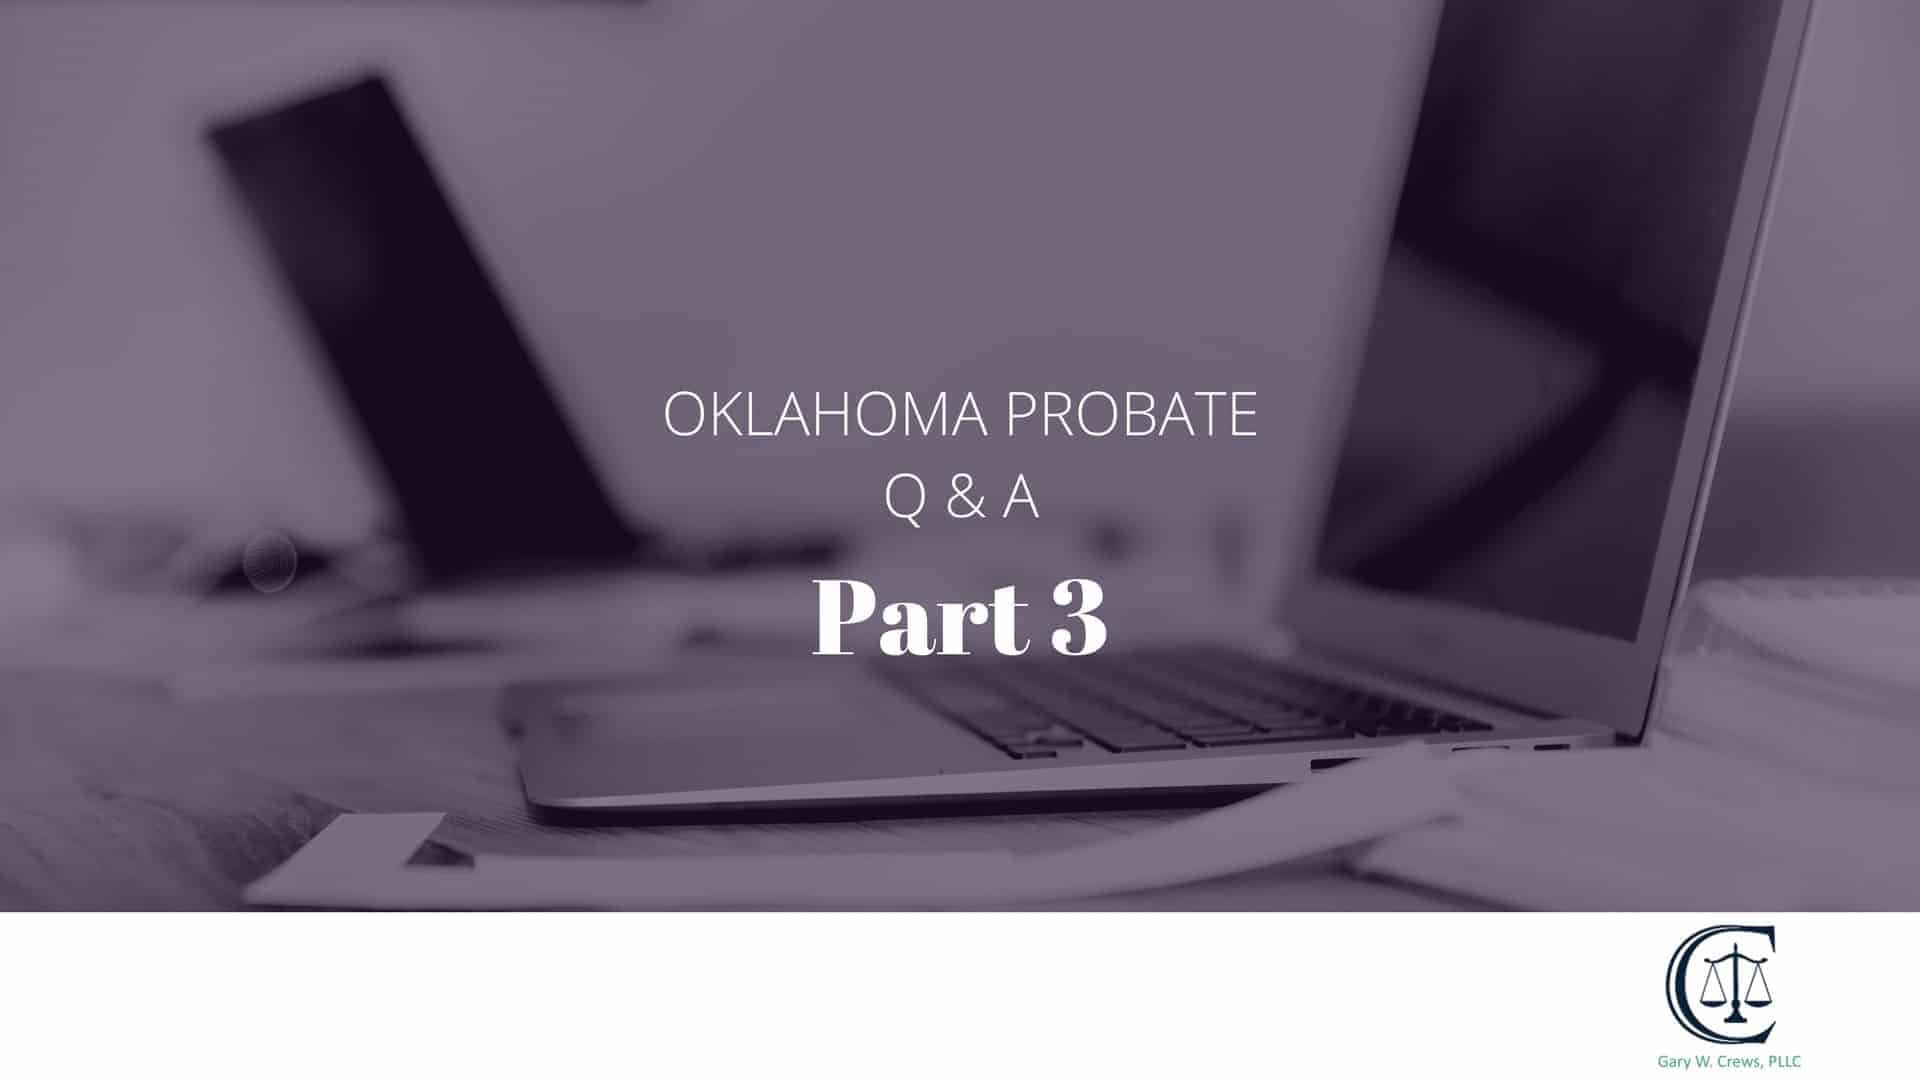 Tulsa Probate Lawyer oklahoma probate law q & a part 3 - probate Qa 2 1 - Oklahoma Probate Law Q & A Part 3